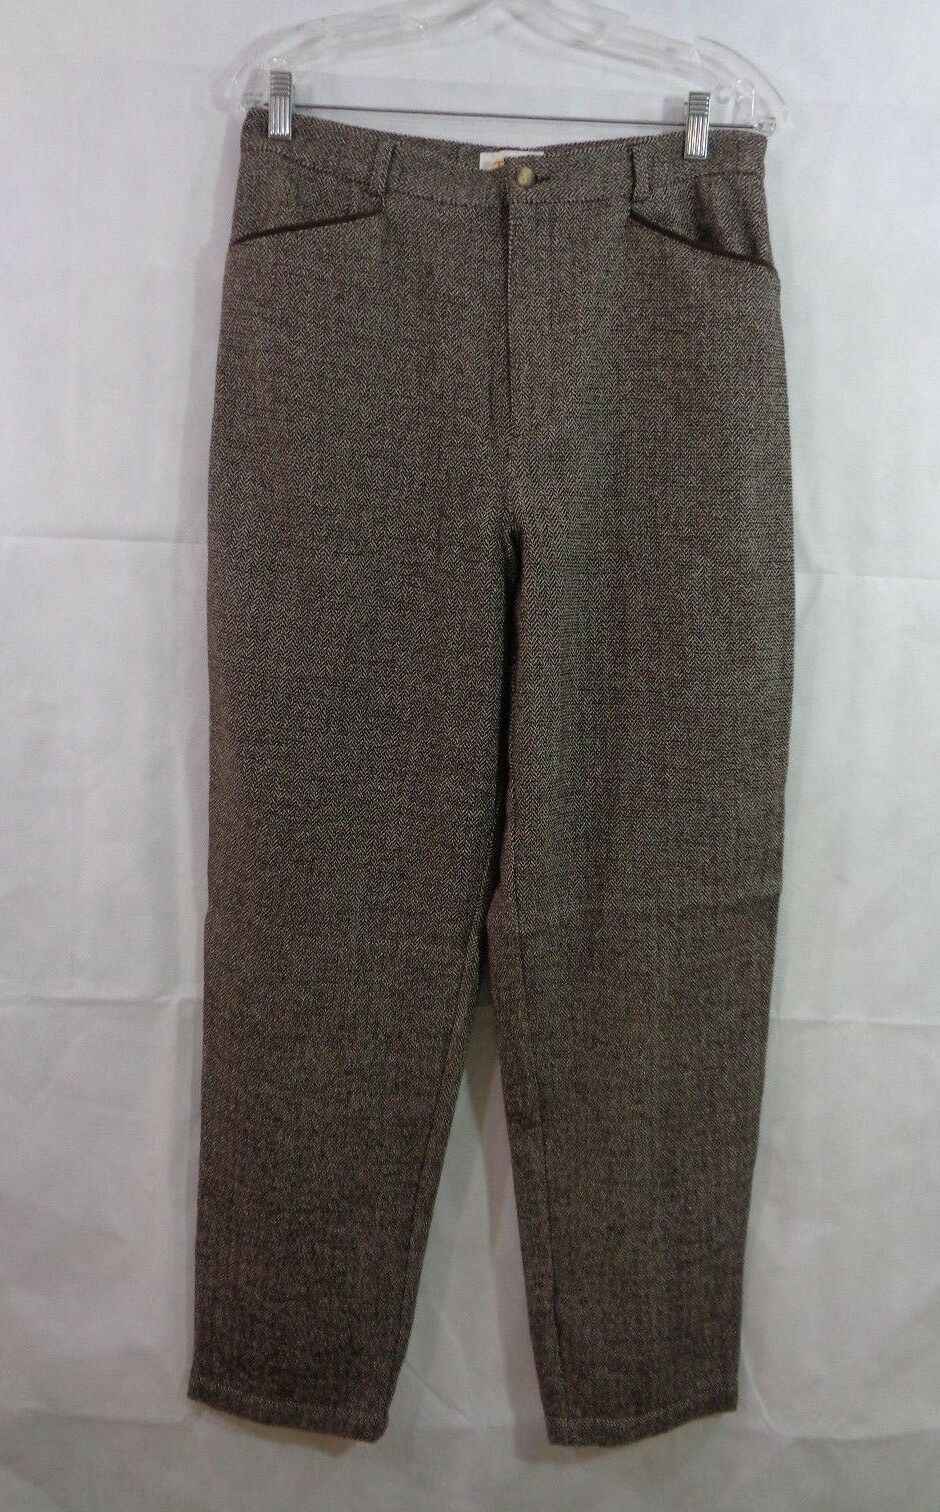 Talbots Women's Brown Herringbone Wool Blend Dress Pants Size 14 NWT